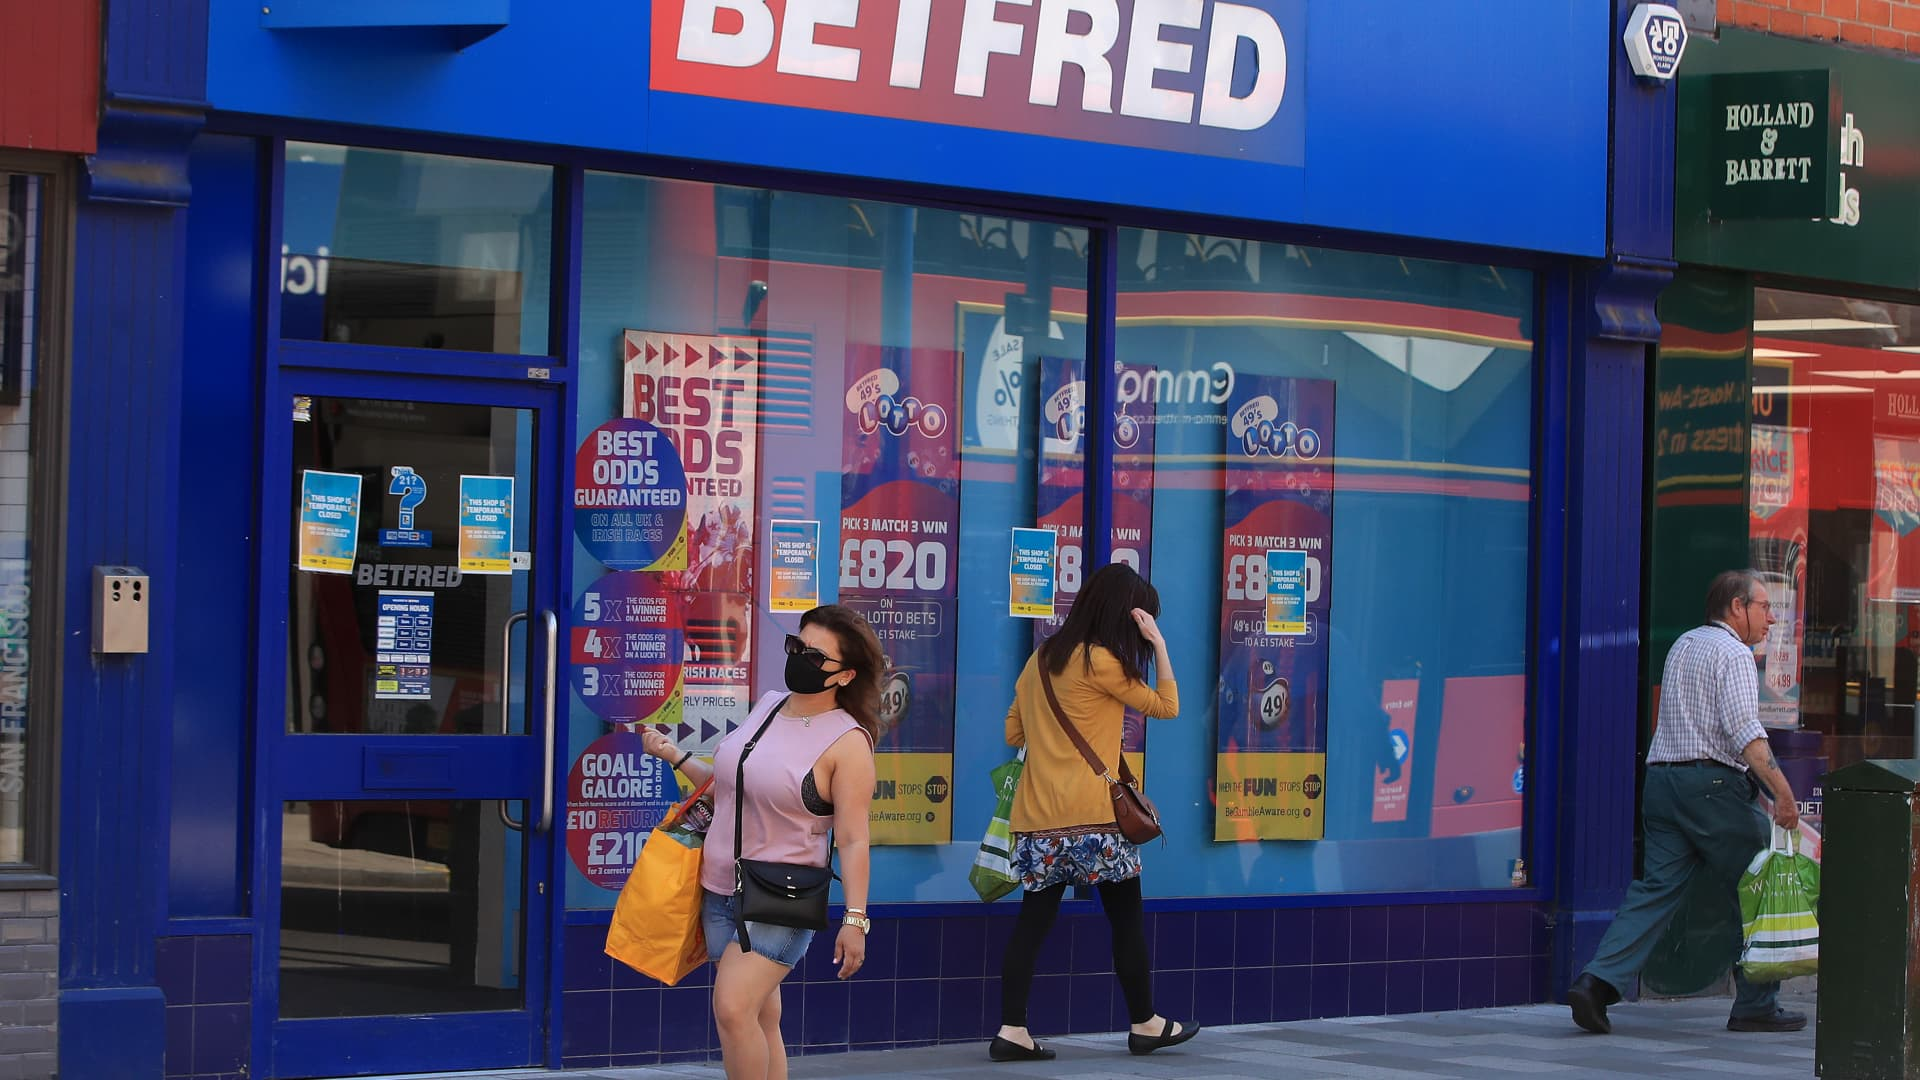 LONDON, ENGLAND - JUNE 01: A general view of a closed betting shop on Putney High Street as horse racing resumes competitive action on June 01, 2020 in London, England